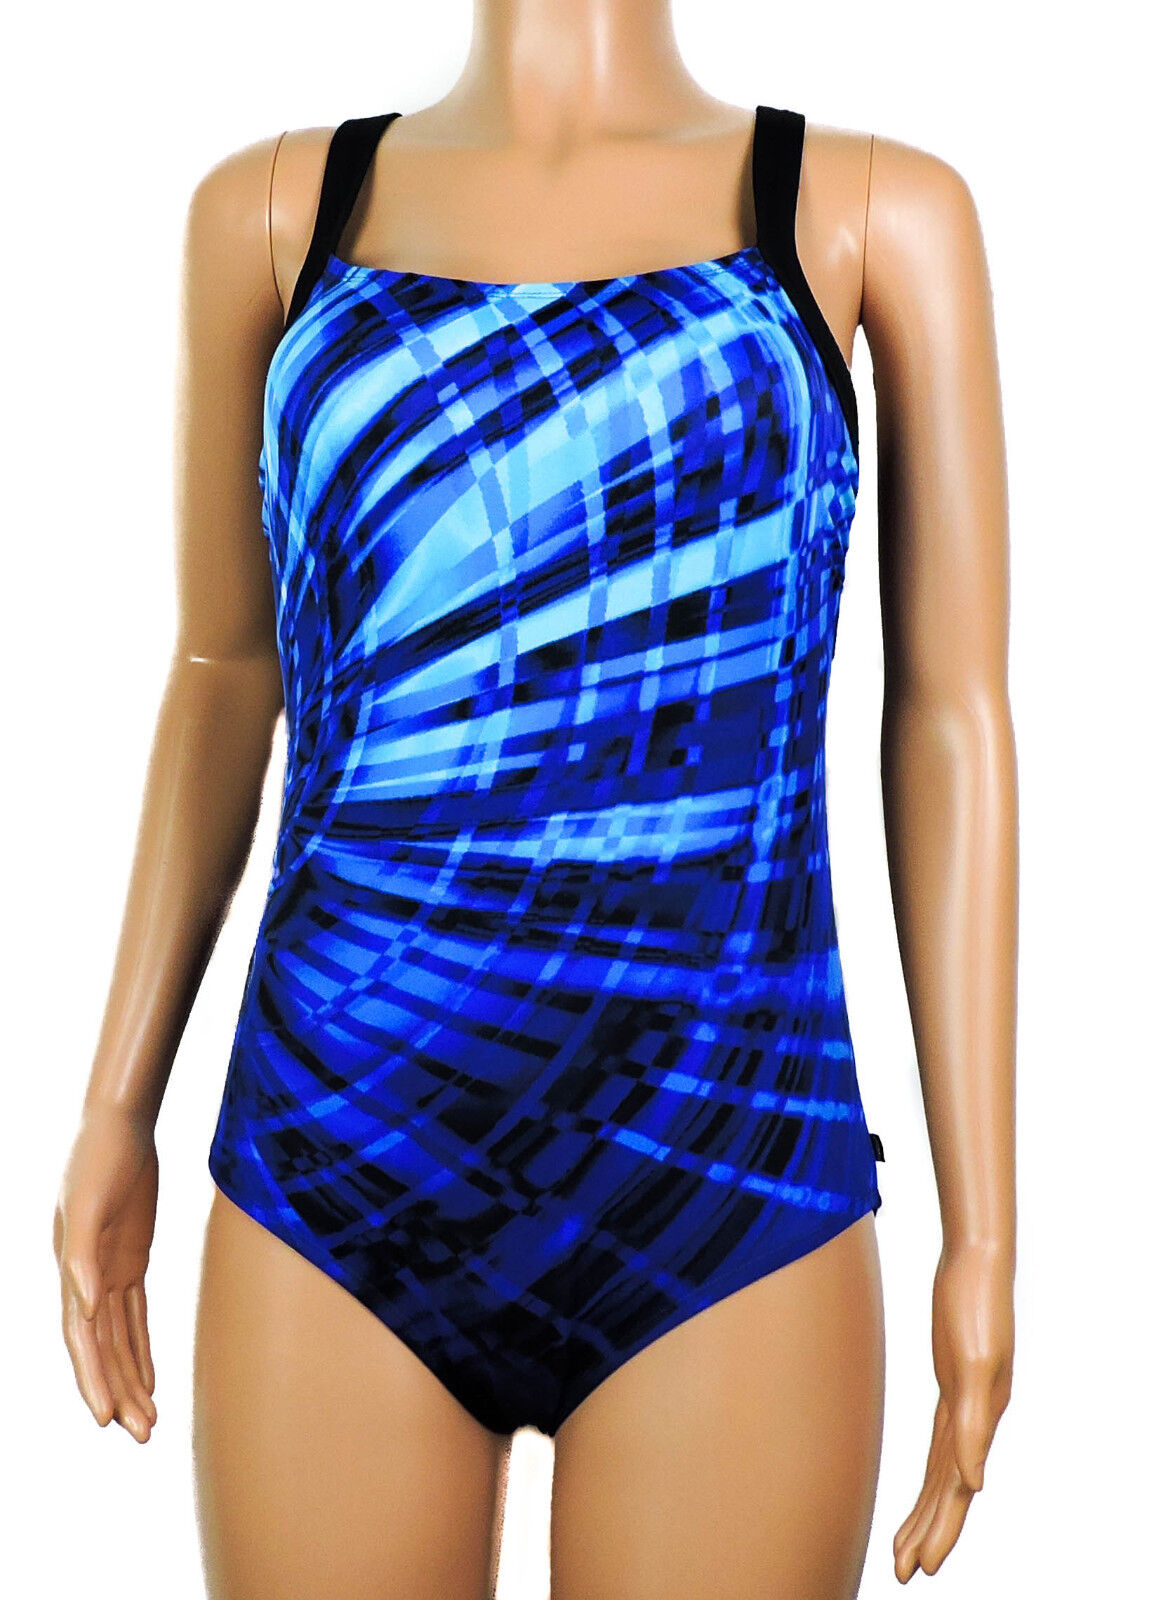 New Reebok bluee Multi Laser Focus Printed Active One PIece Swimsuit Size 14